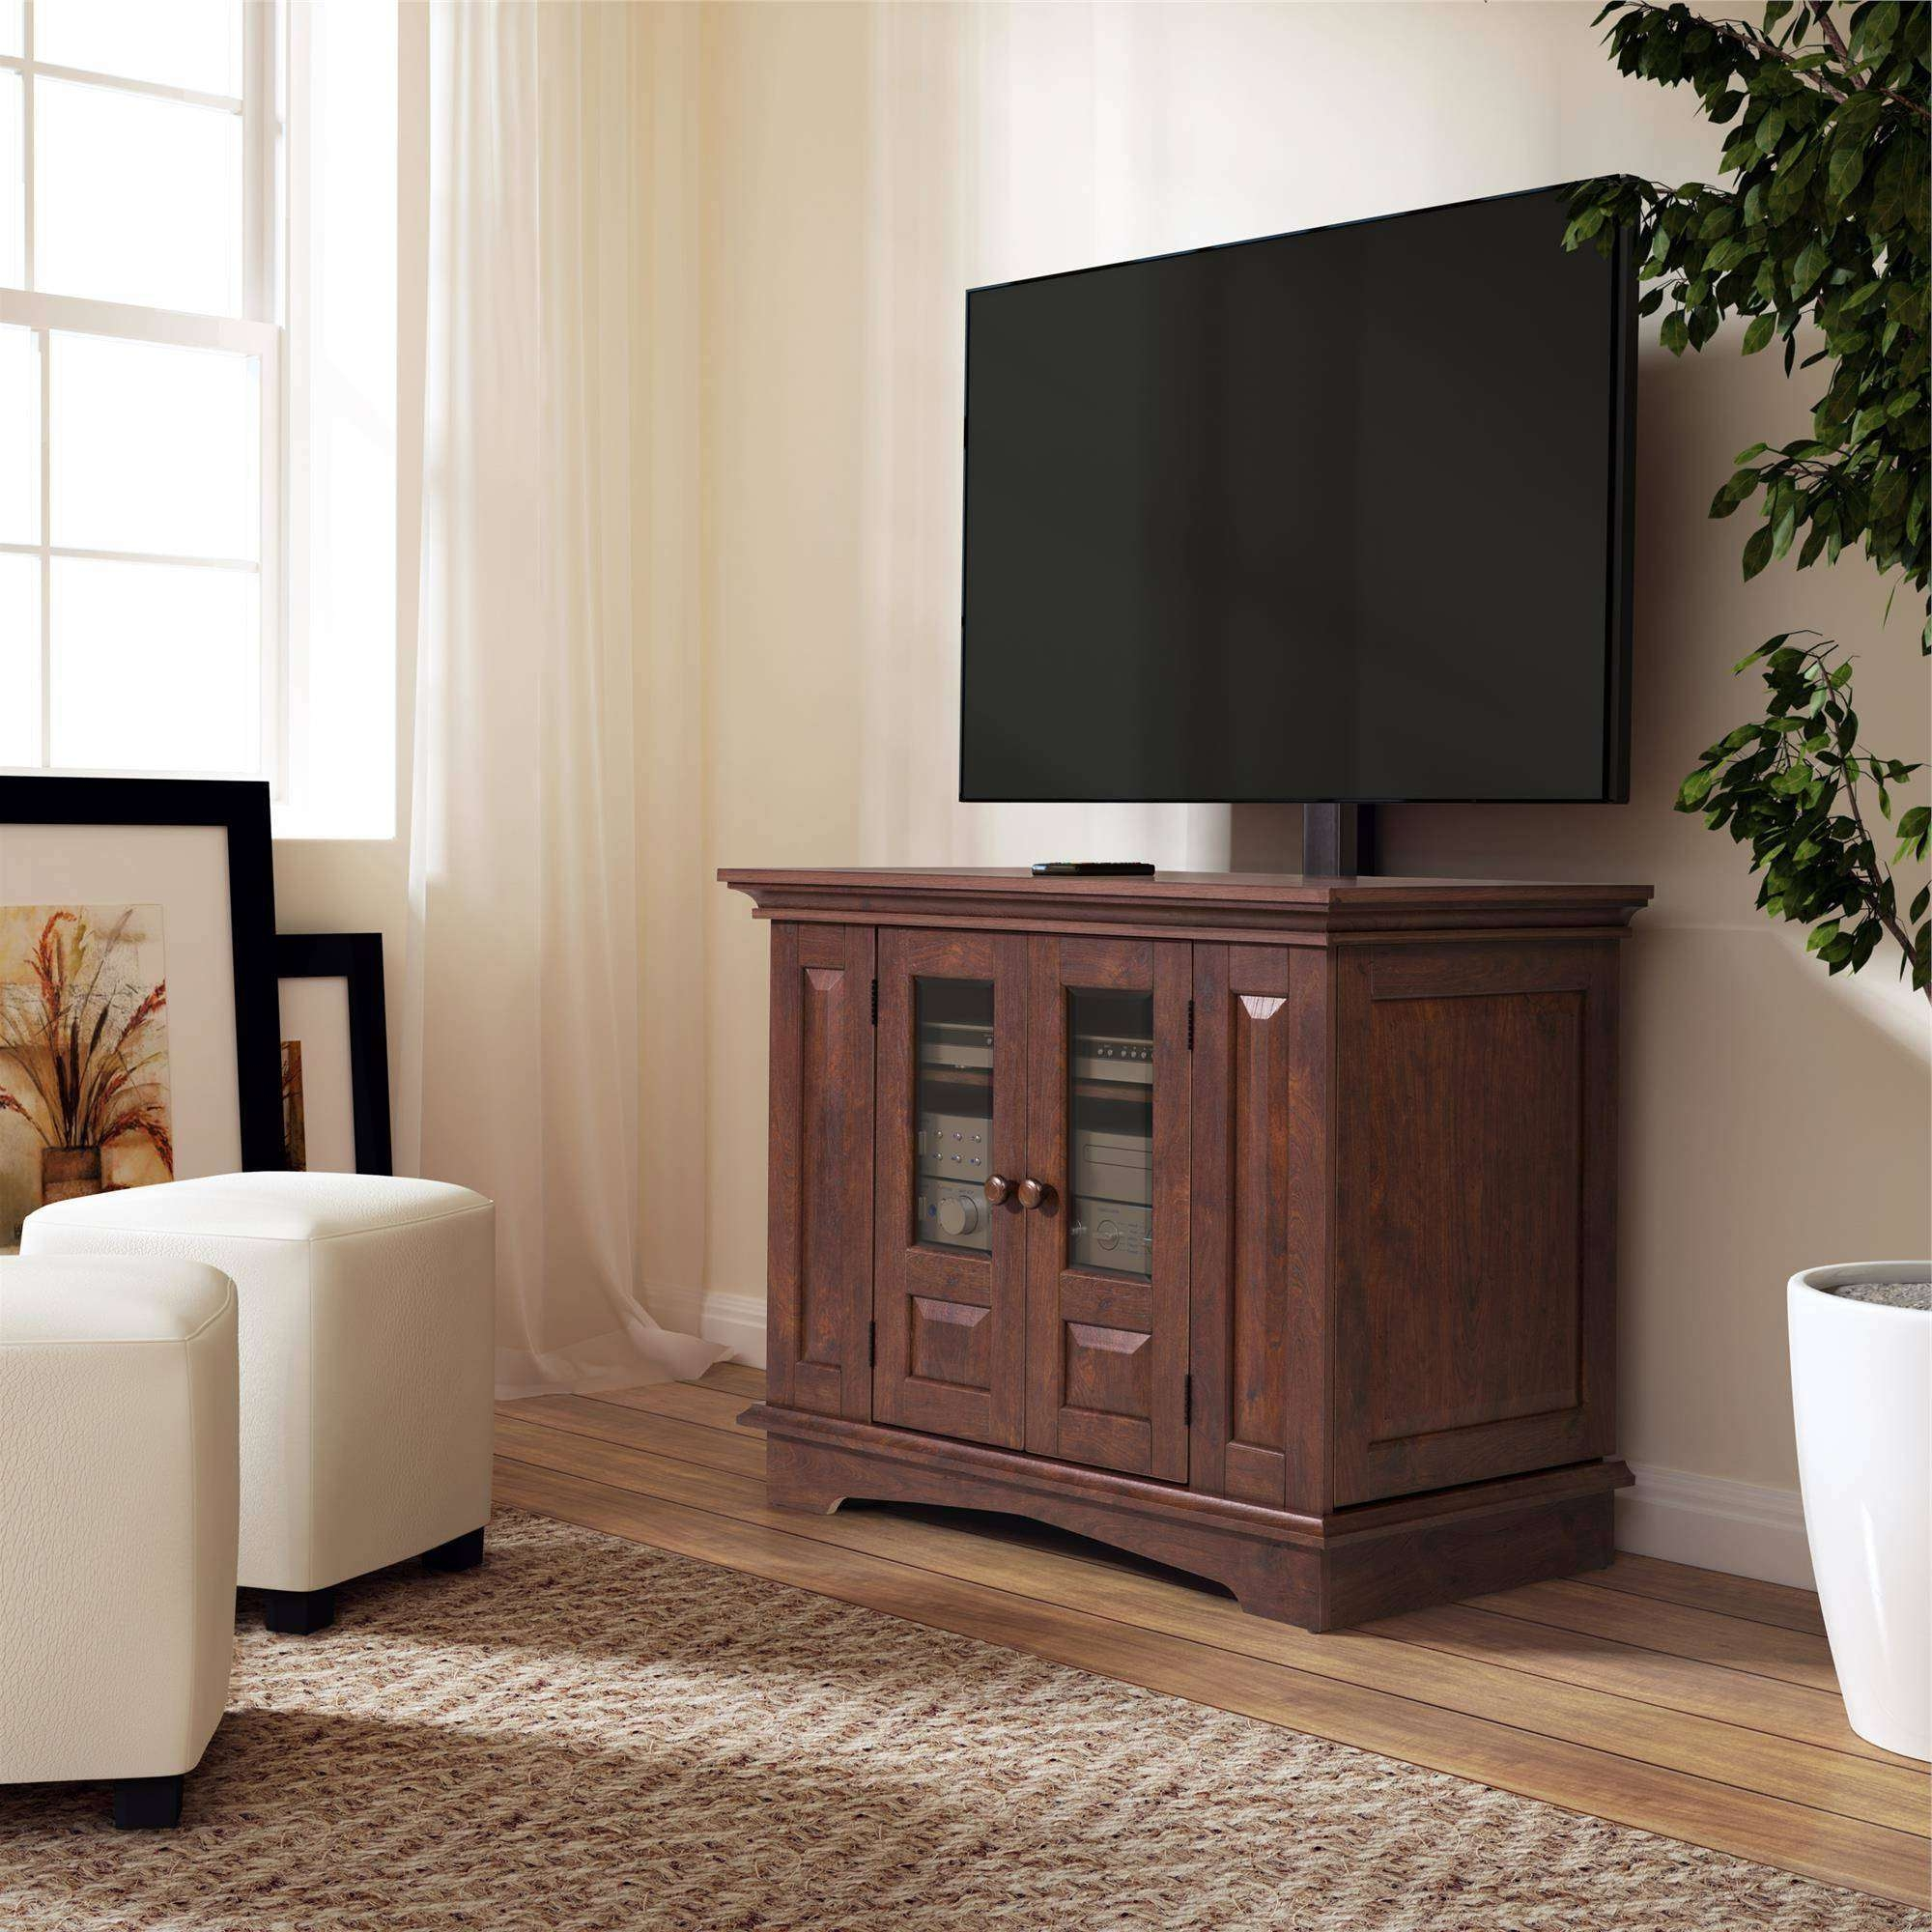 Willow Mountain Cherry Tv Stand With Mount, For Tvs Up To 37 Within Cherry Wood Tv Cabinets (View 14 of 20)